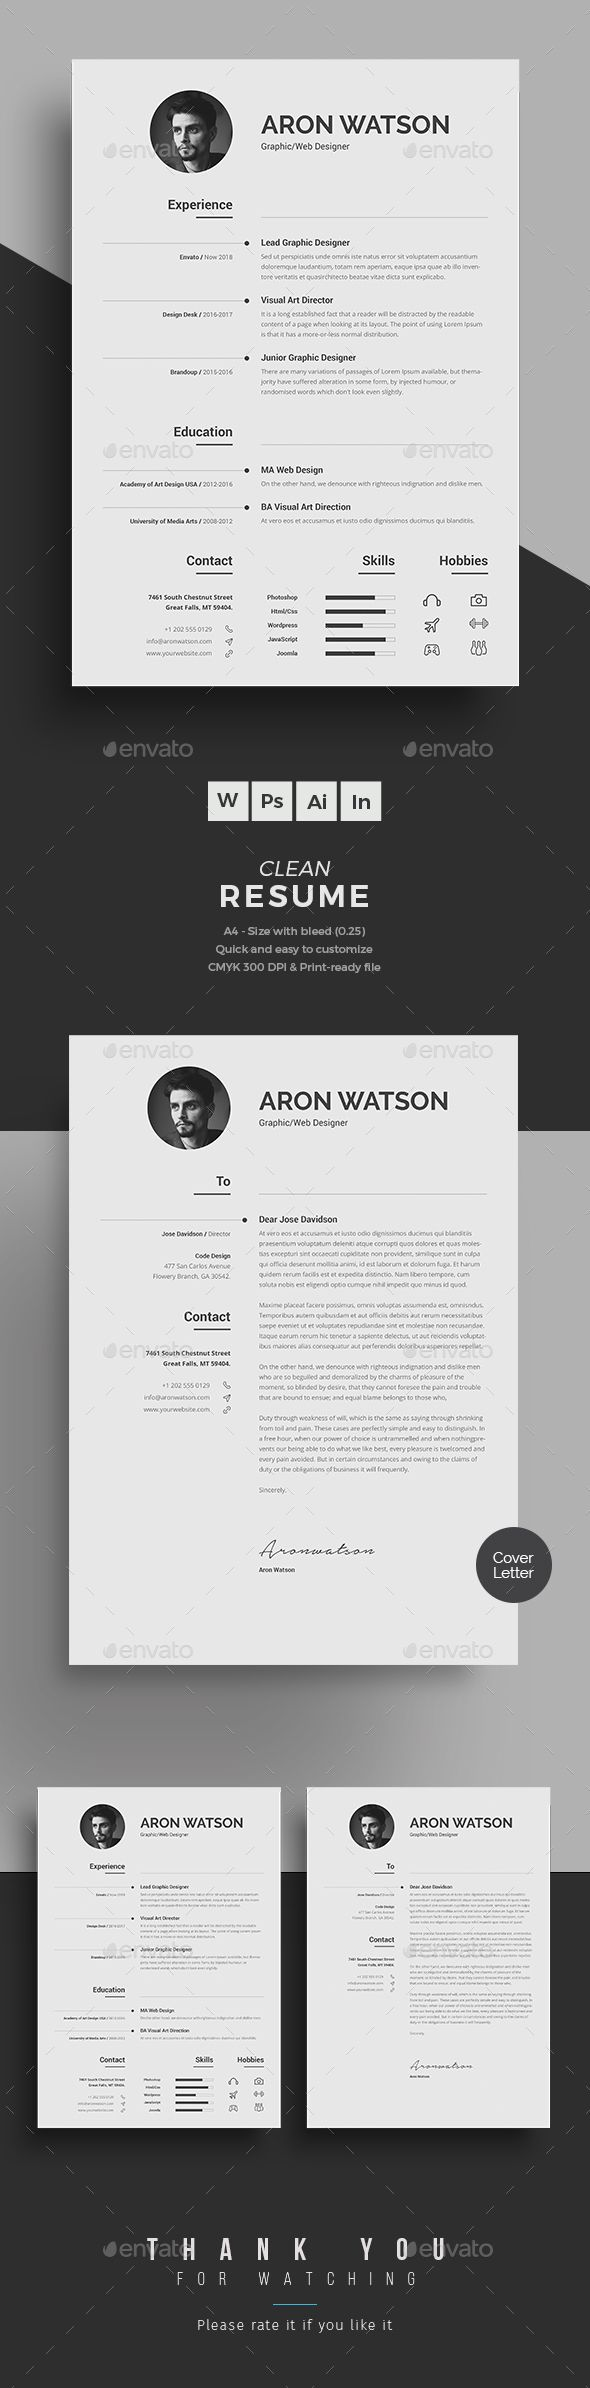 Visual Resume Templates Clean Resume Format In Wordsimple Typographic And Visual